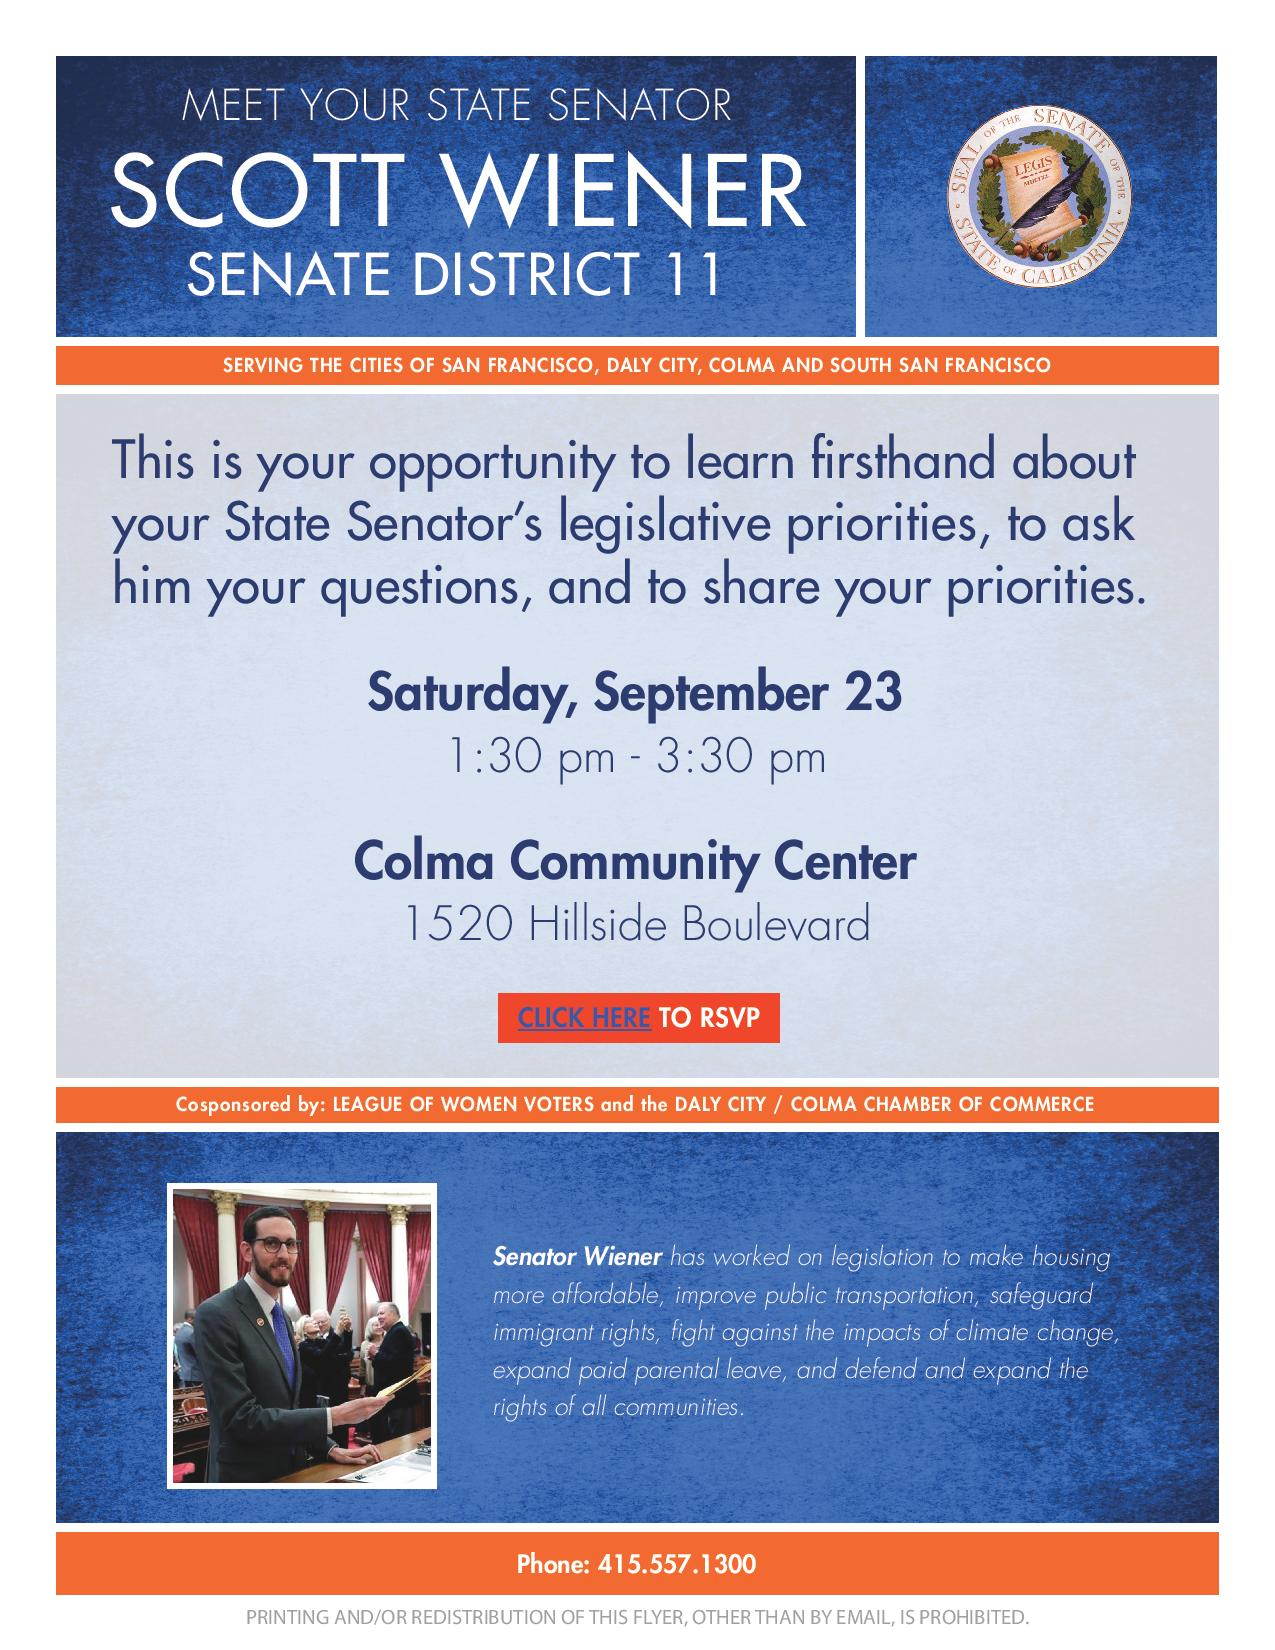 Senator Scott Wiener to Co-Host Town Hall Meeting in Colma Saturday September 23rd